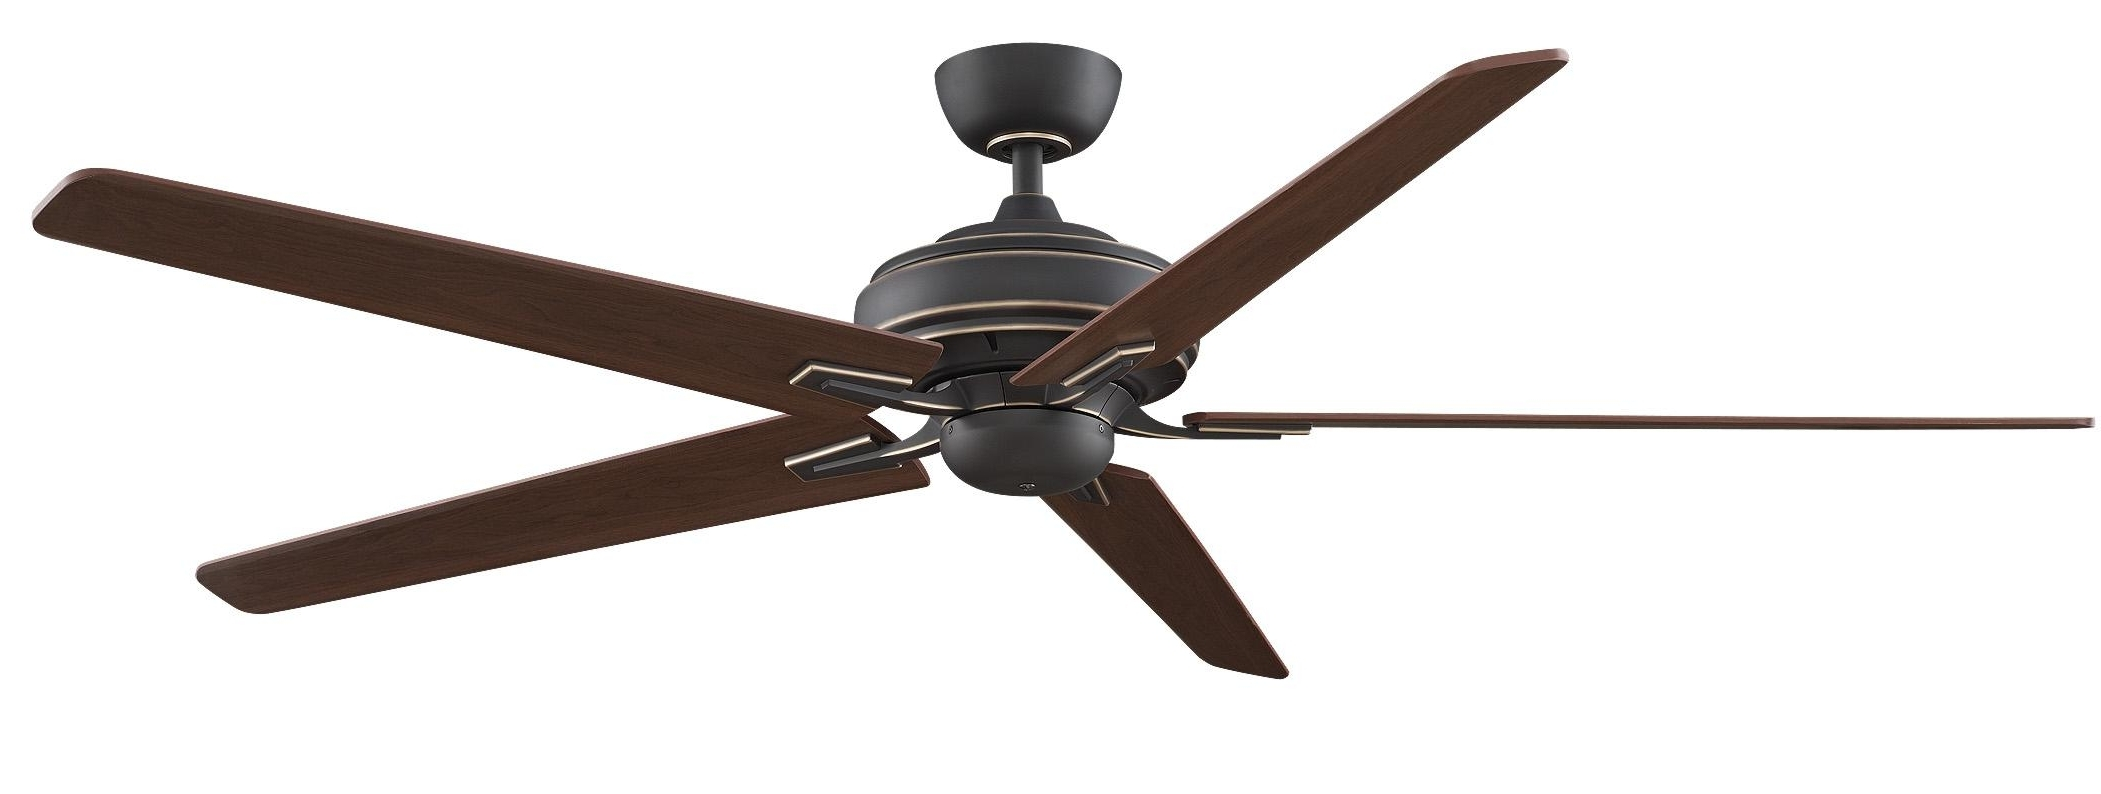 2018 Outdoor Ceiling Fans And Lights With Regard To Inch Outdoor Ceiling Fan With 60 Ceiling Fan With Light (View 13 of 20)